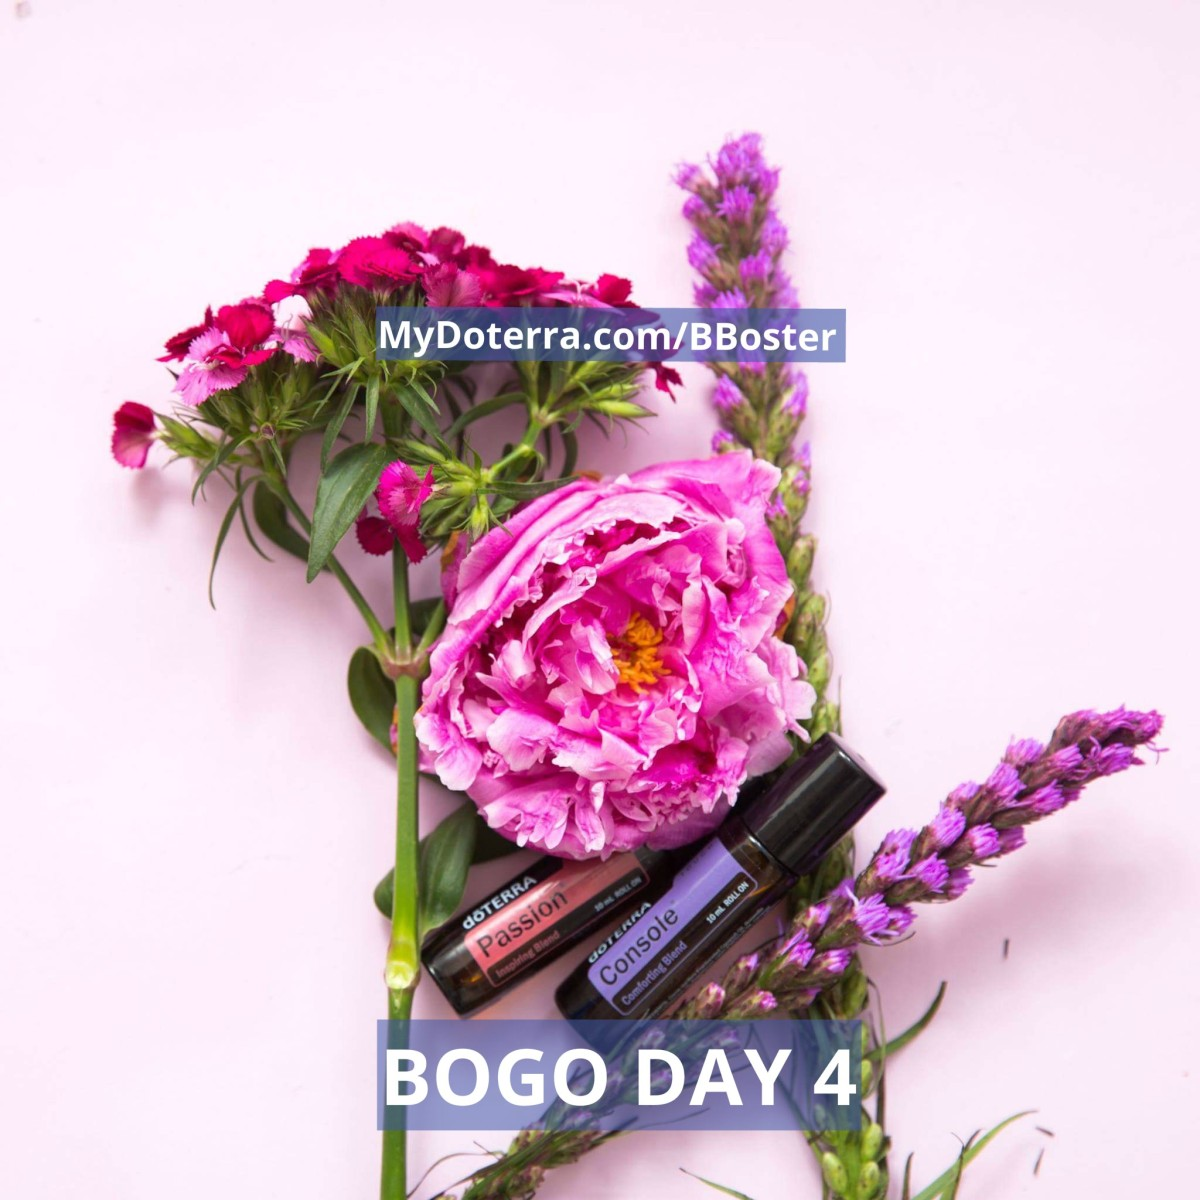 BOGO THURSDAY